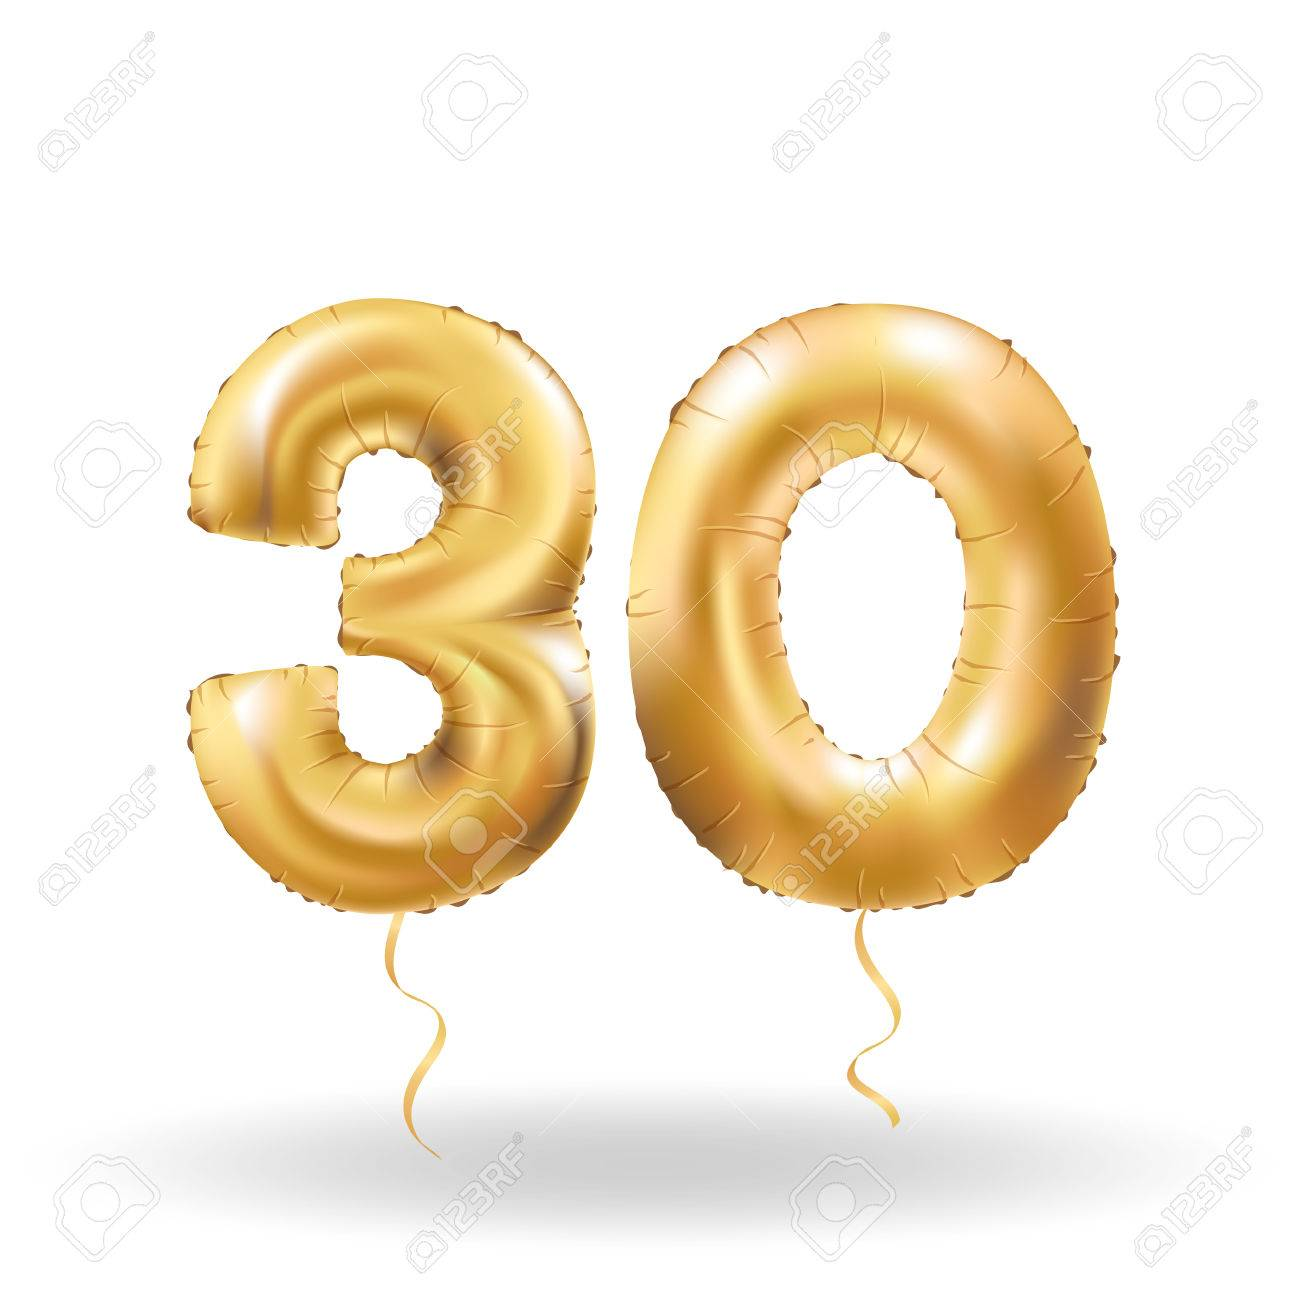 Golden number thirty metallic balloon. Party decoration golden balloons. Anniversary sign for happy holiday, celebration, birthday, carnival, new year. Metallic design balloon. - 67018804